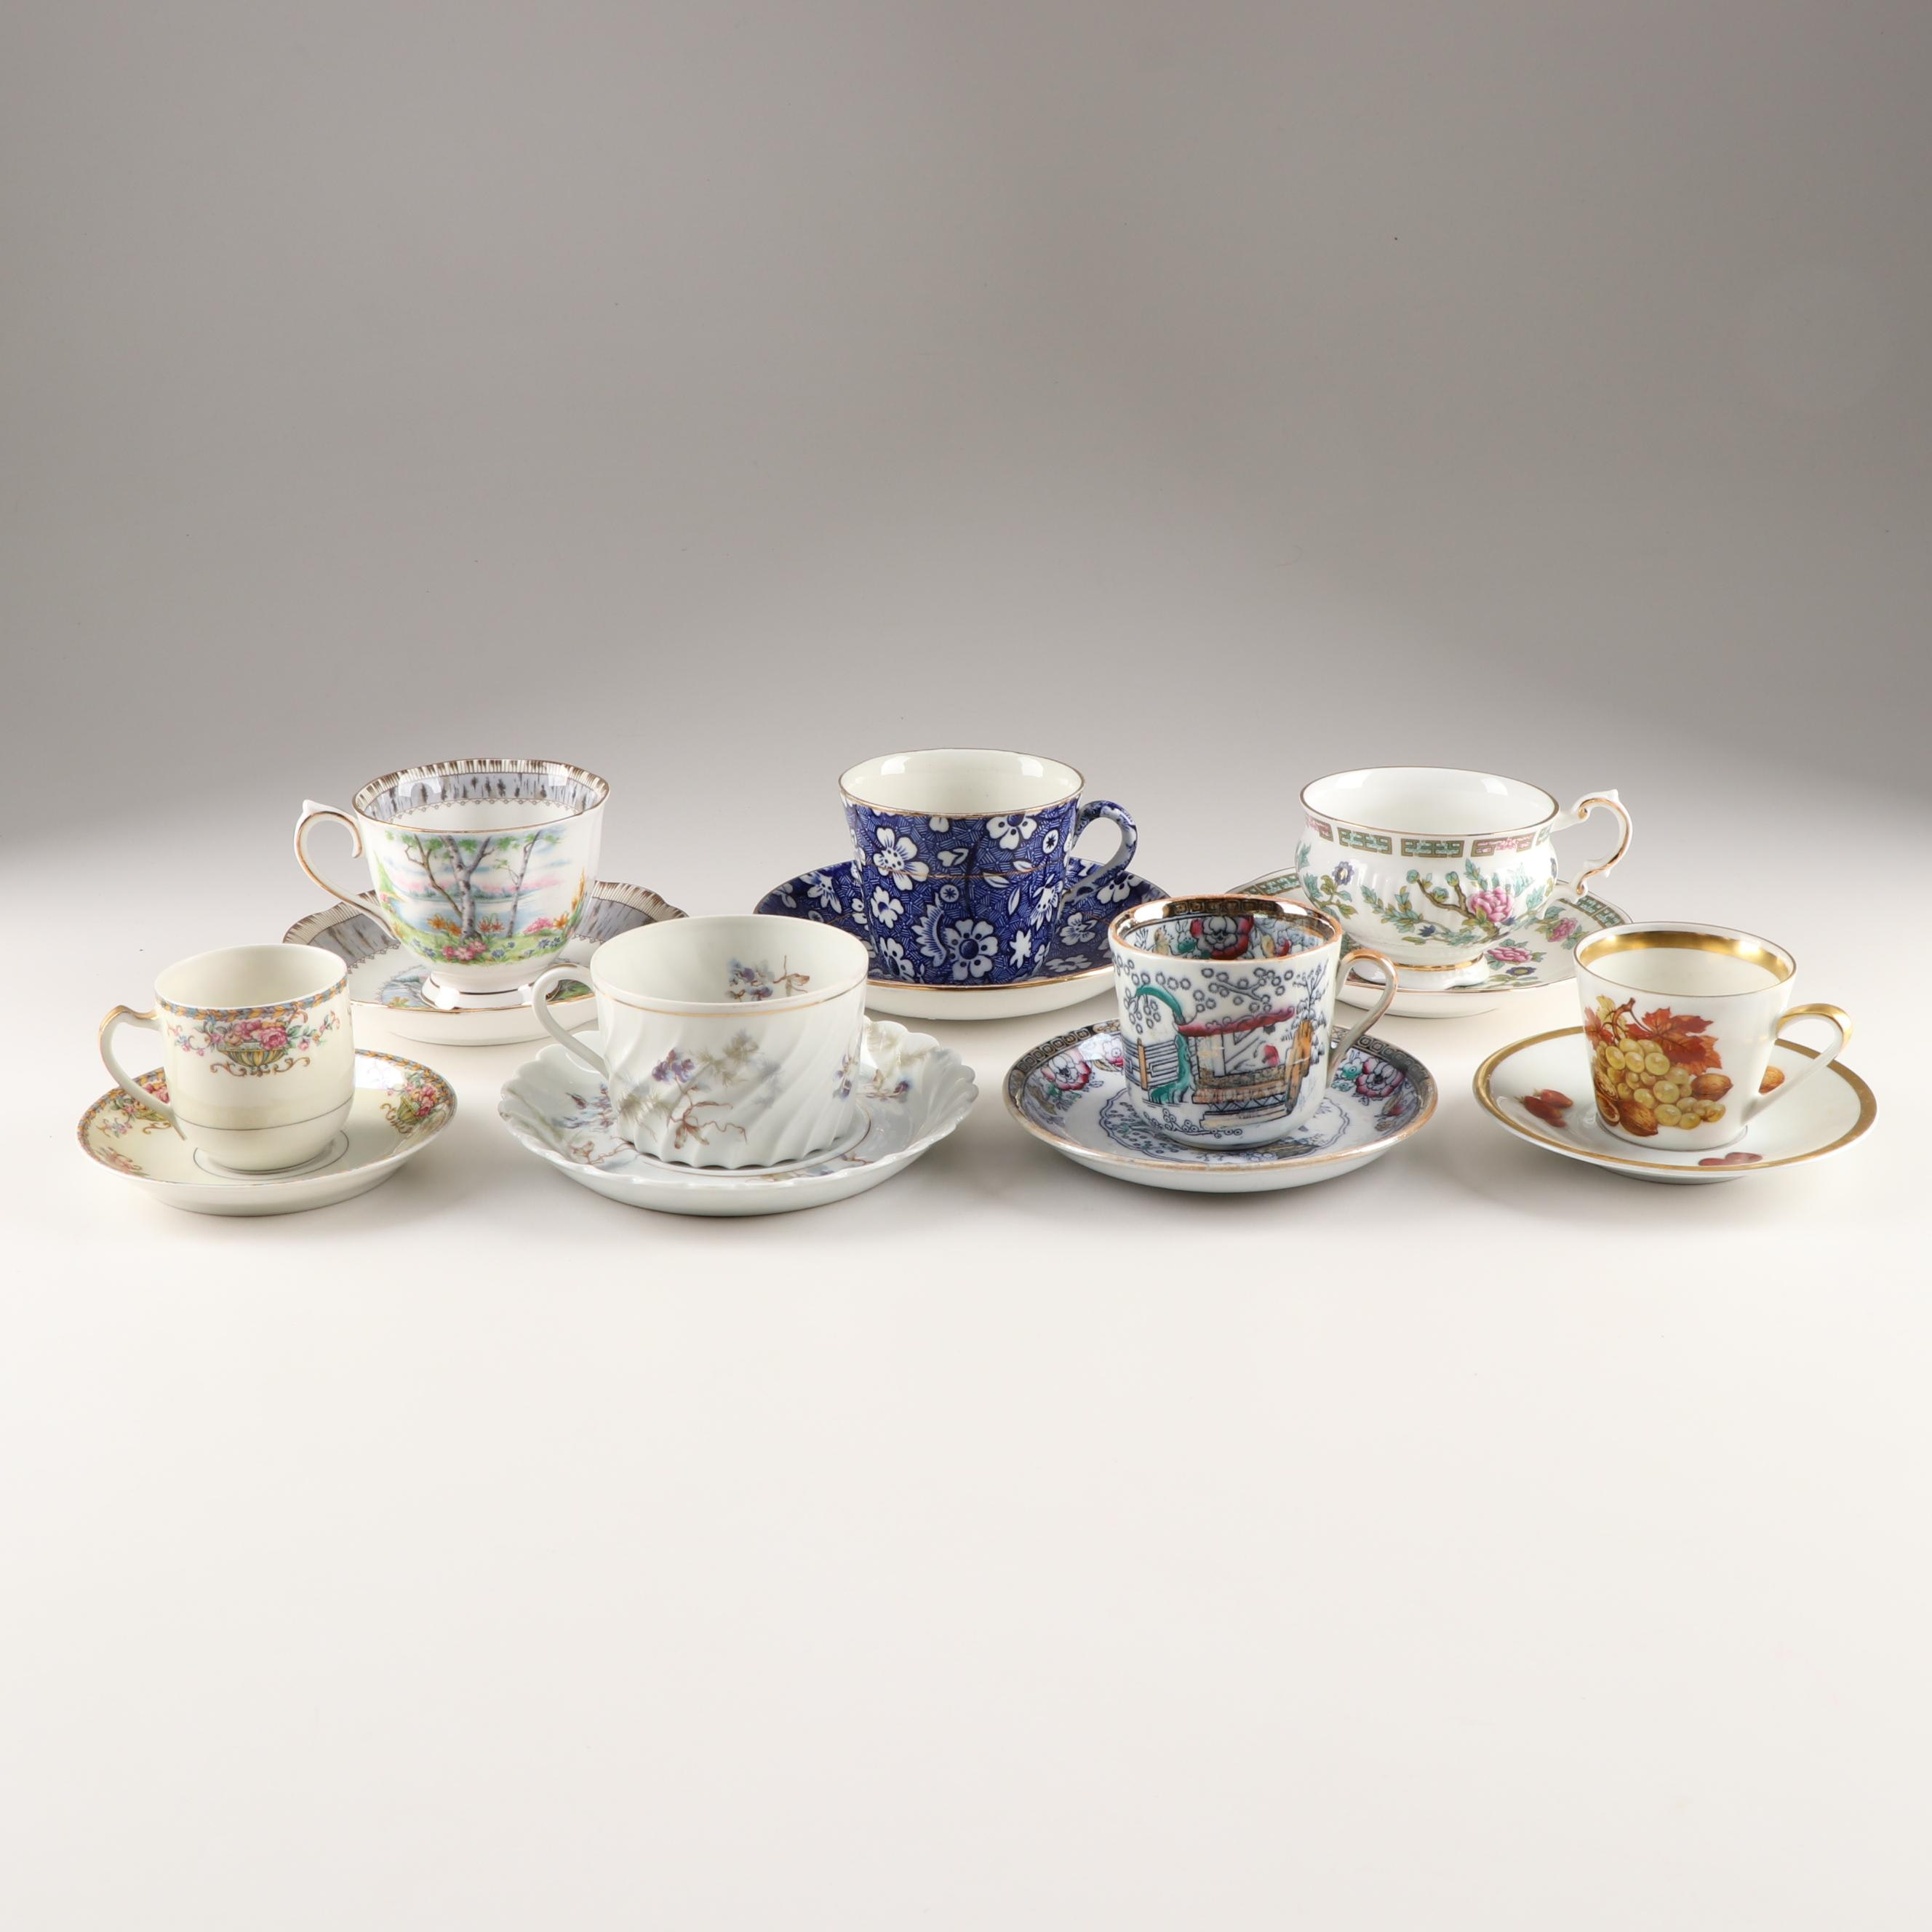 Mixed Demitasse and Teacups with Saucers Including Royal Albert